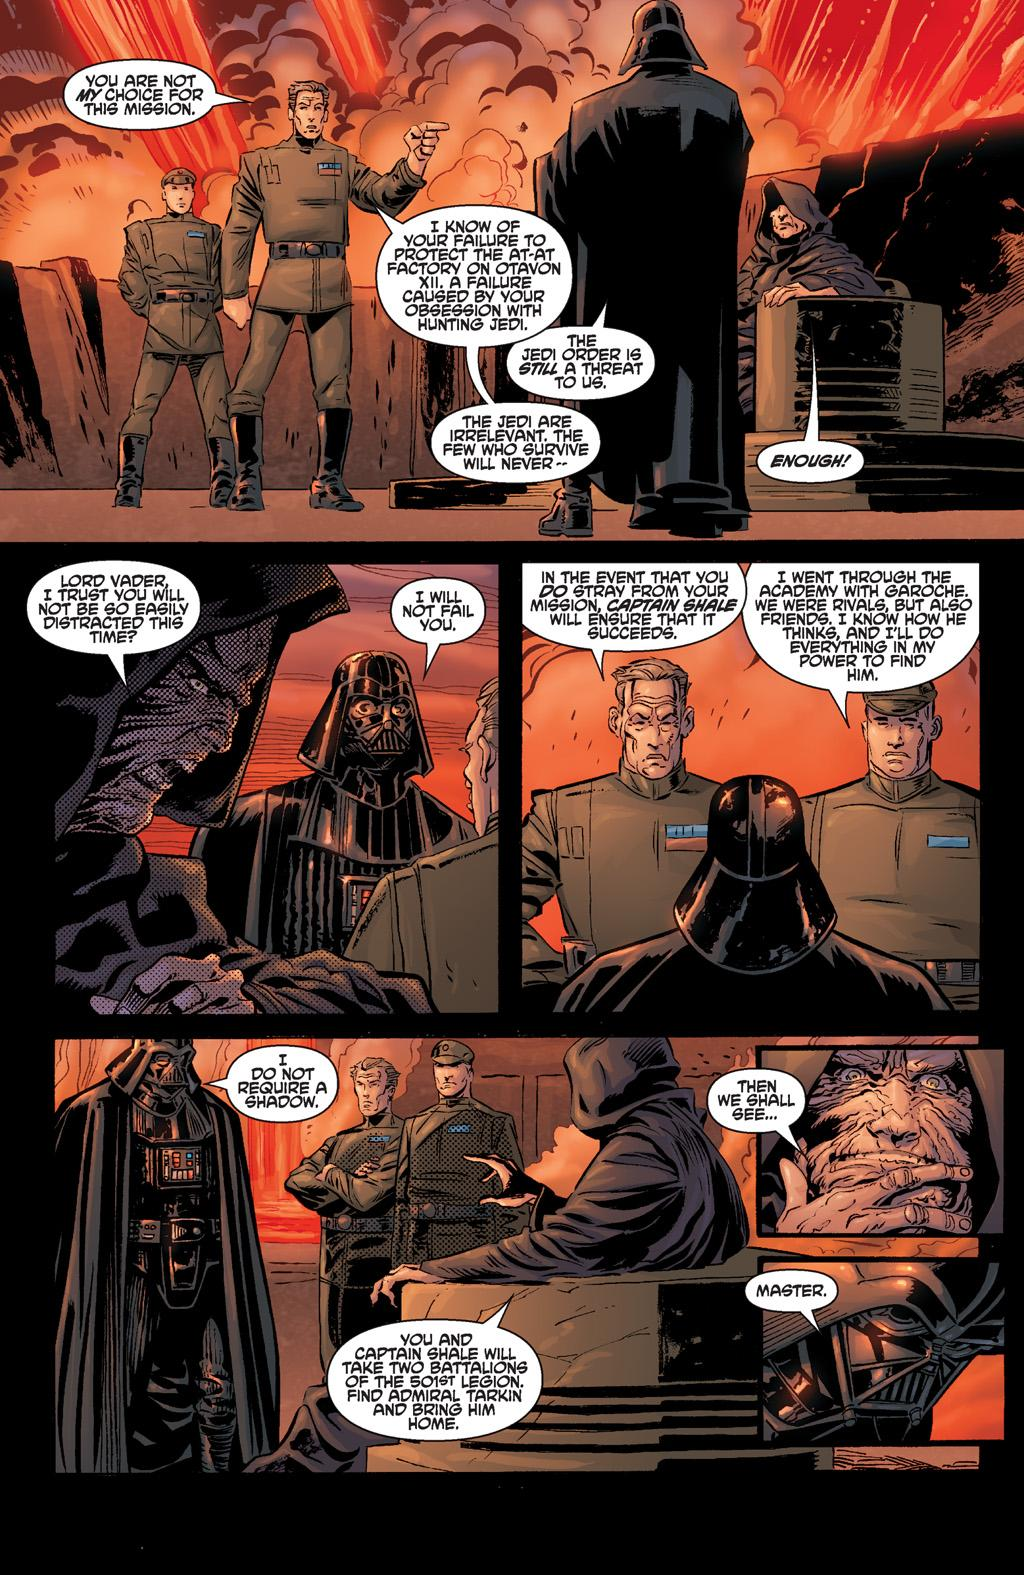 Darth Vader and the Lost Command review